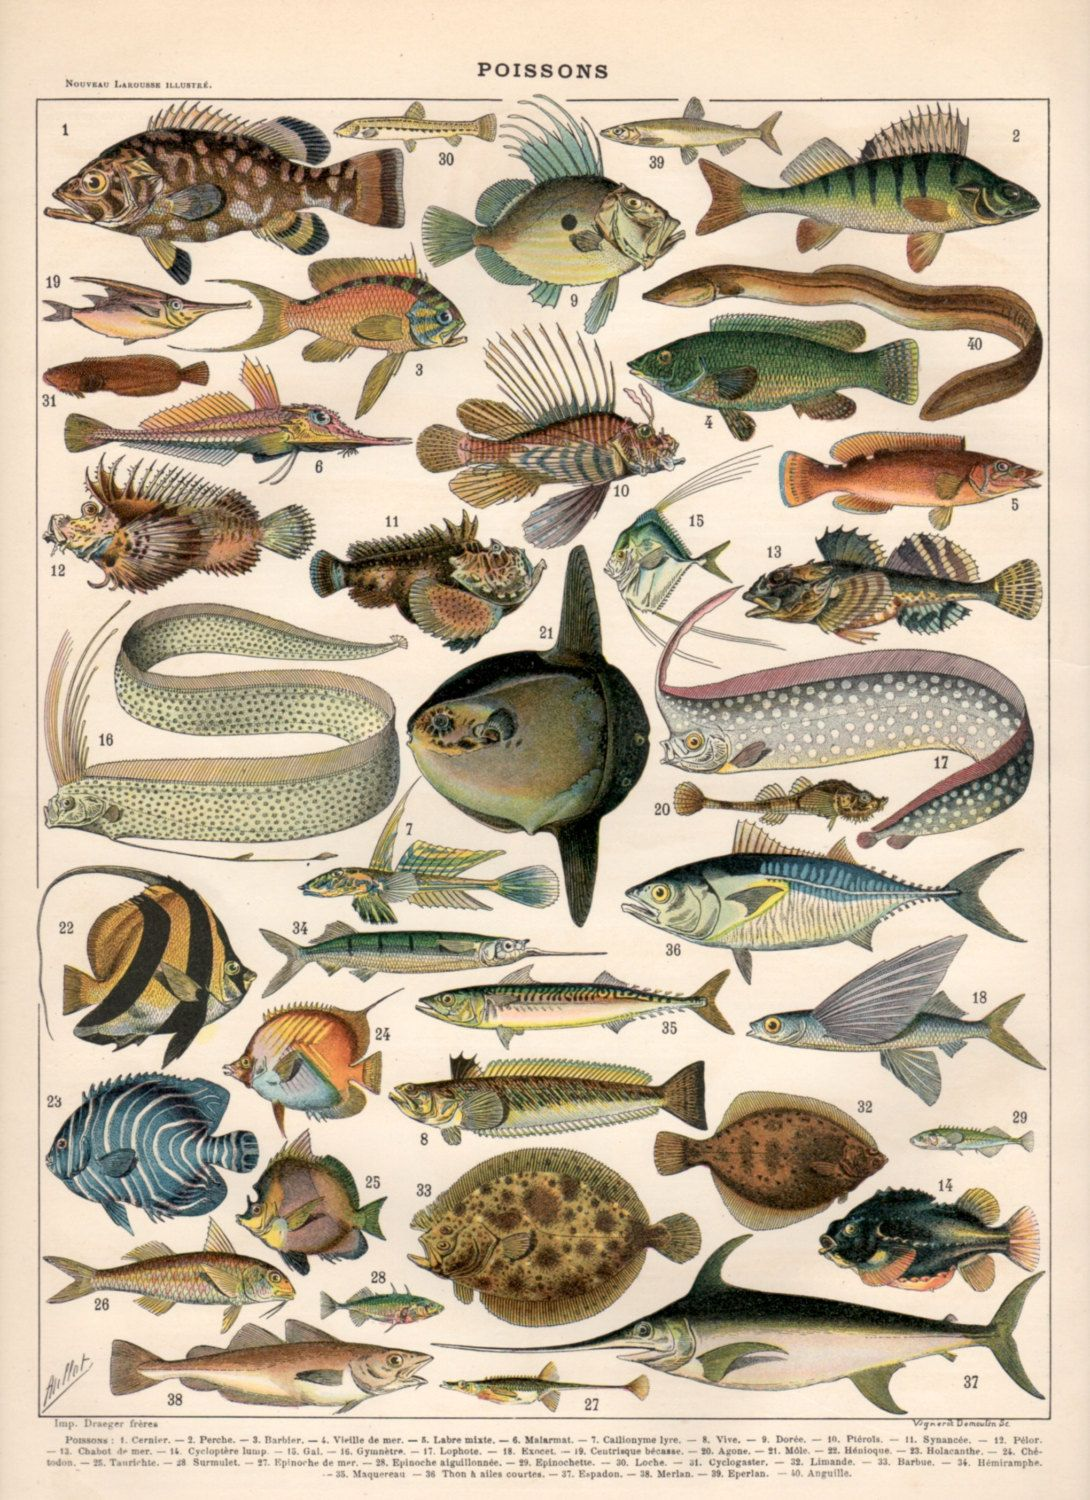 Freshwater fish england - Fish Antique Print 1897 Vintage Lithograph Poisson Poster Freshwater Fish Print Saltwater Fish Aquarium Fish Species Angelfish